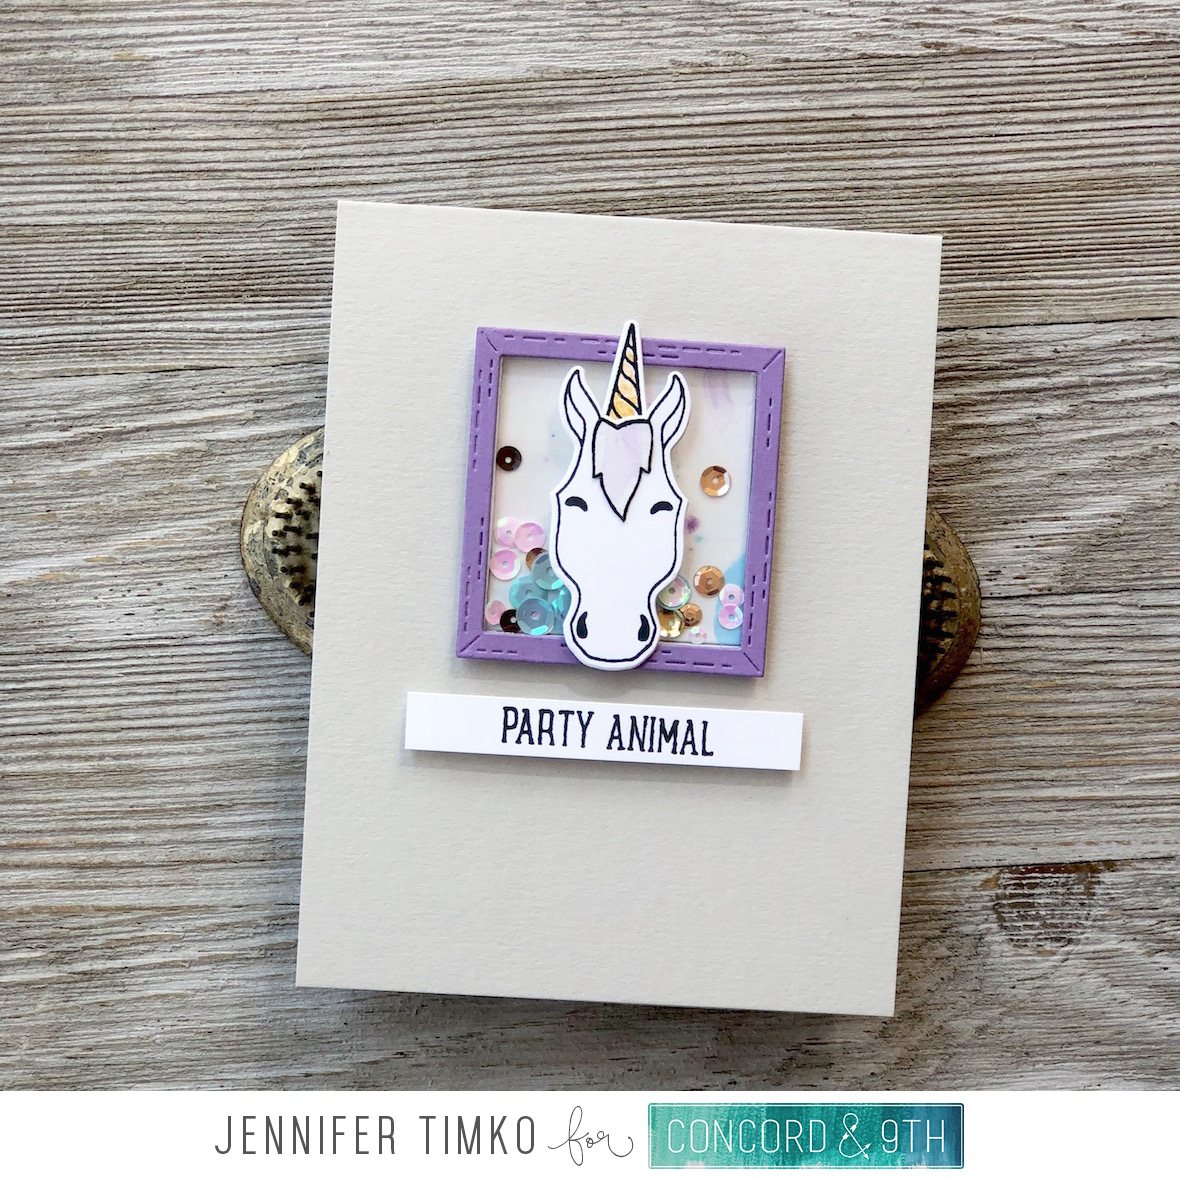 Party Animal by Jen Timko | Furry Friends Stamp Set and Dies by Concord and 9th, Shaker Card, Marbled Smooch Technique, Smooch Accent Ink